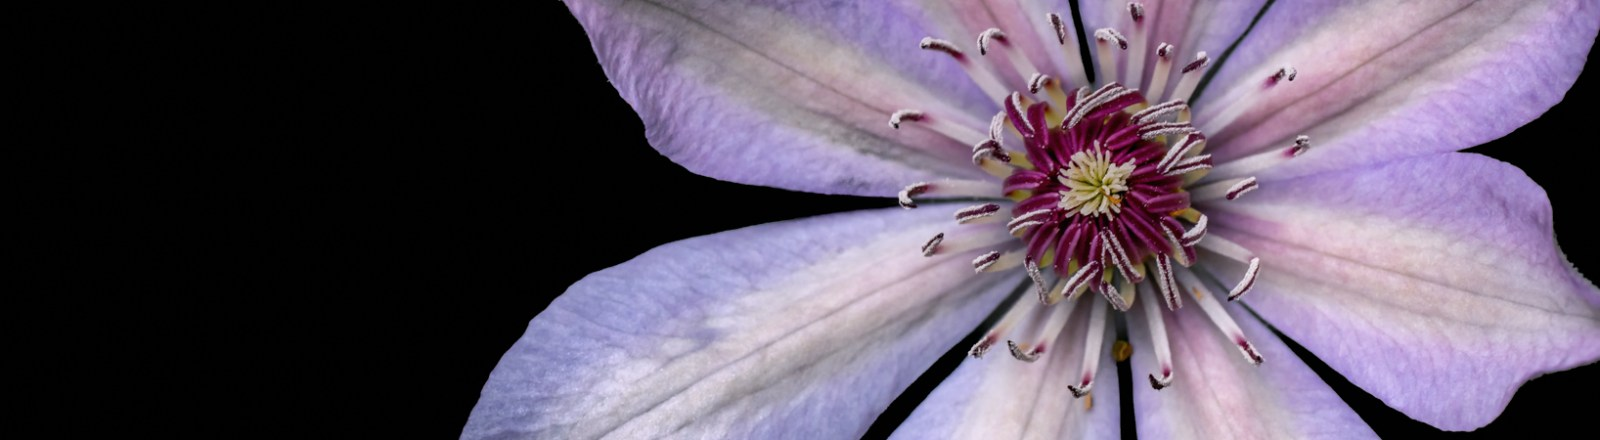 Spring 2020: April Colors 7 (Clematis in Bloom, 3 of 3)